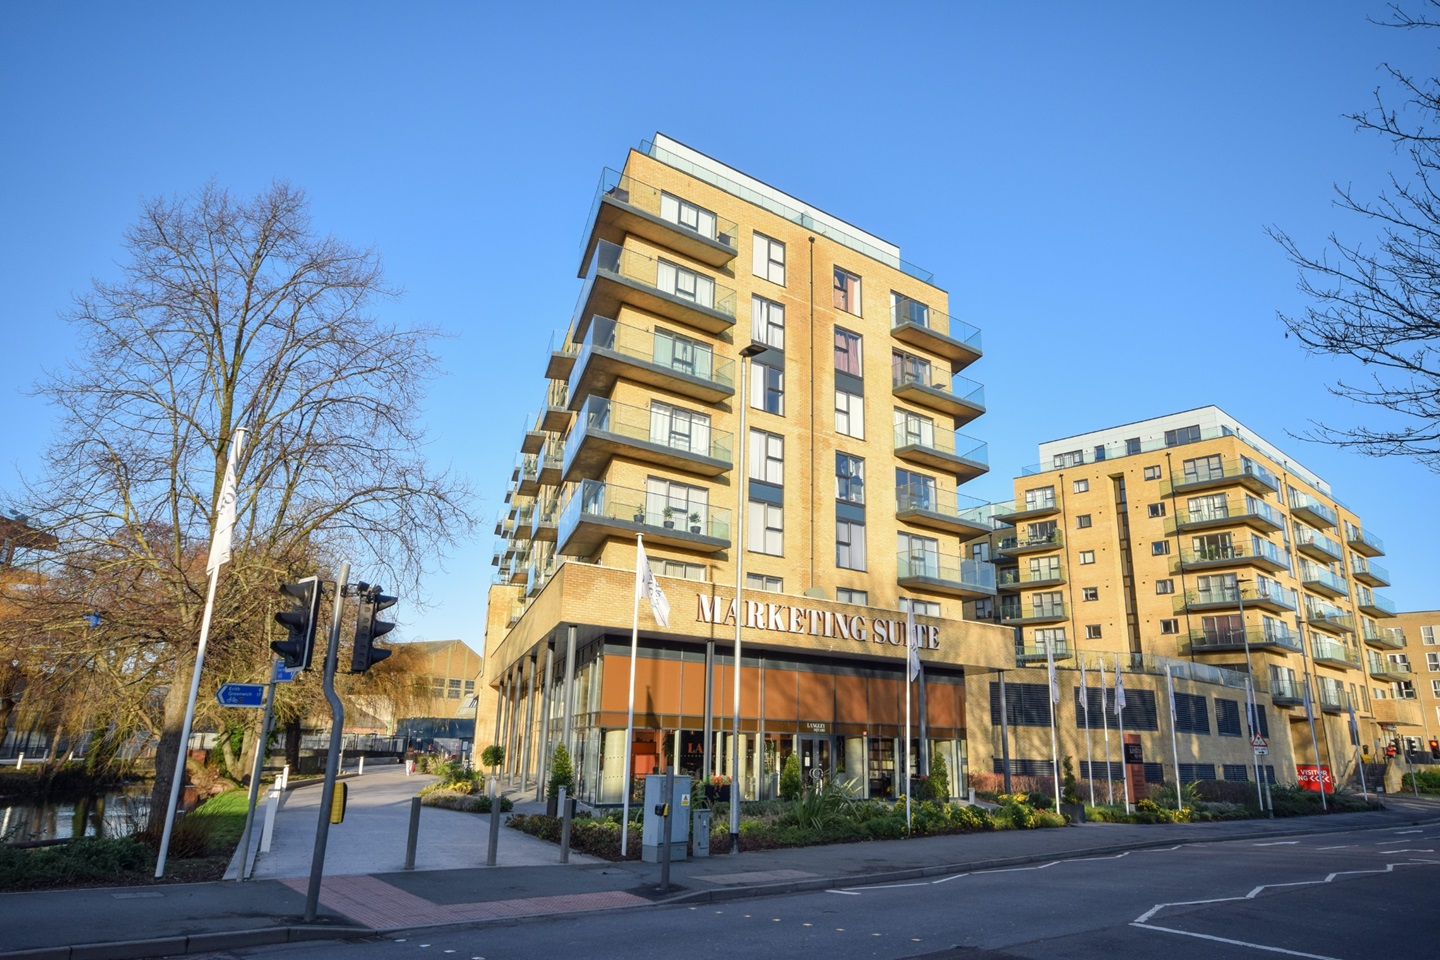 Dartford - 2 Bed Flat, Oldfield Place, DA1 - To Rent Now ...